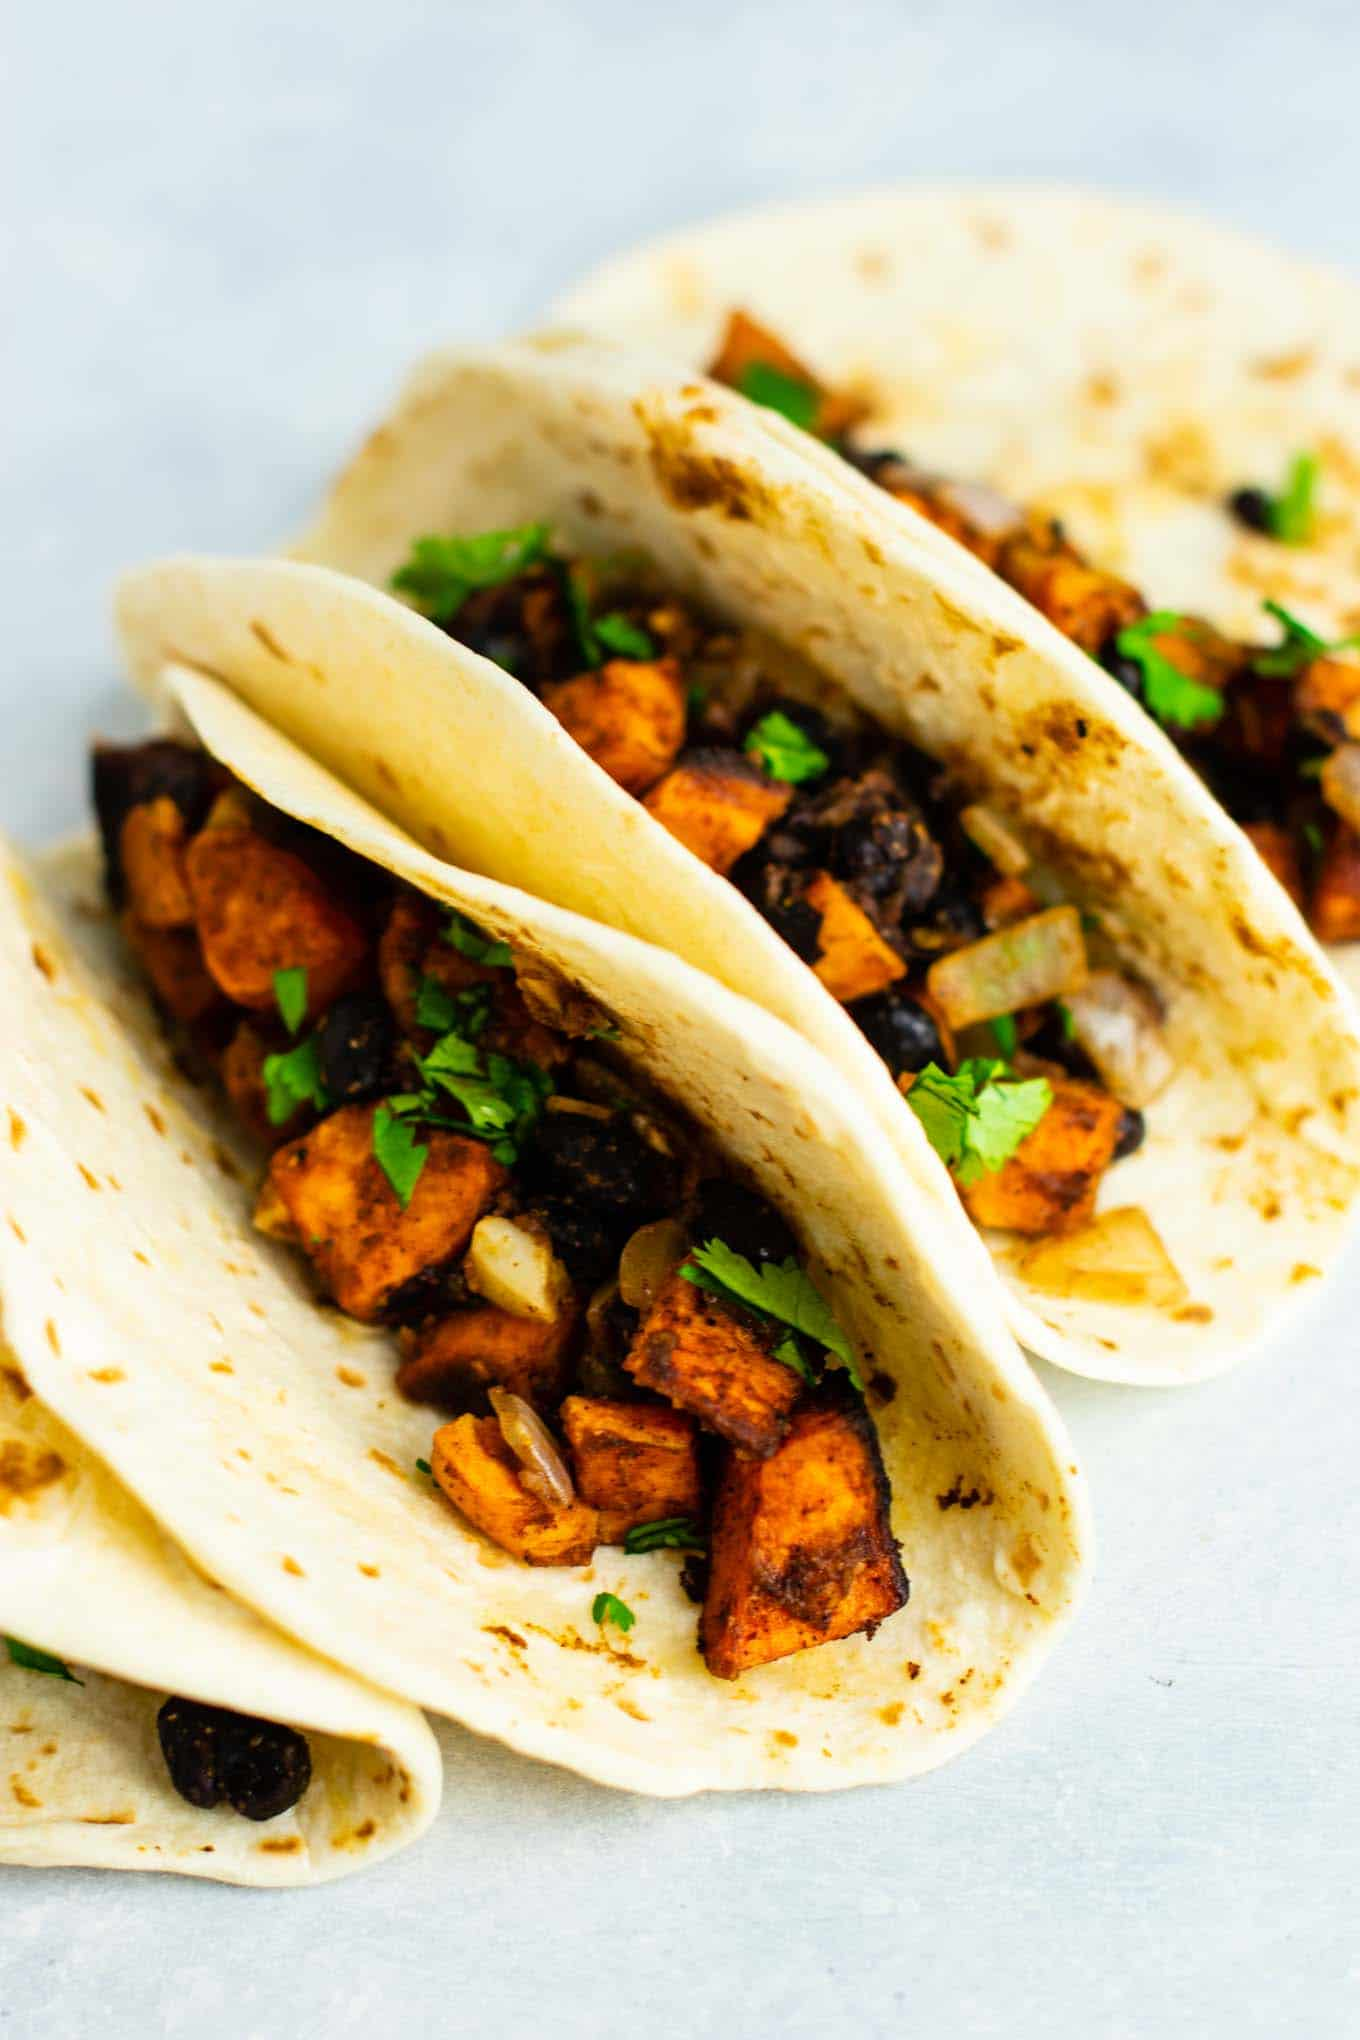 Sweet potato tacos with black beans and cilantro. Healthy, meatless, insanely delicious vegan dinner recipe! Serve with salsa and optional sour cream. #vegan #sweetpotatotacos #sweetpotatorecipes #sweetpotato #veganmexican #vegandinner #vegetarian #vegetariandinner #meatlessdinner #meatlesstacos #vegantacos